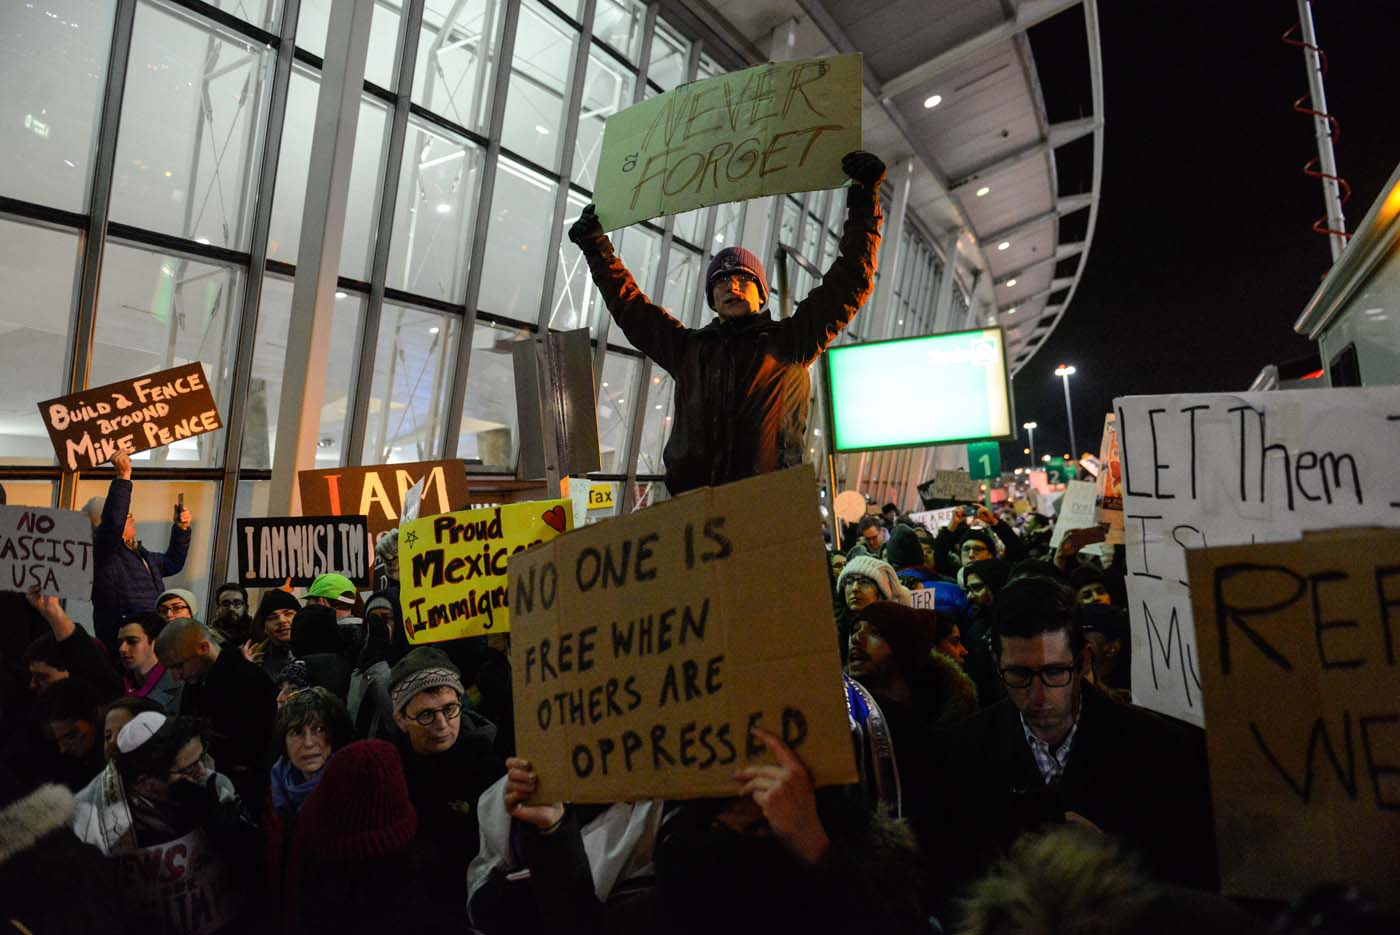 NEW YORK, NY - JANUARY 28: Protestors rally during a demonstration against the new immigration ban issued by President Donald Trump at John F. Kennedy International Airport on January 28, 2017 in New York City. President Trump signed the controversial executive order that halted refugees and residents from predominantly Muslim countries from entering the United States. Stephanie Keith/Getty Images/AFP